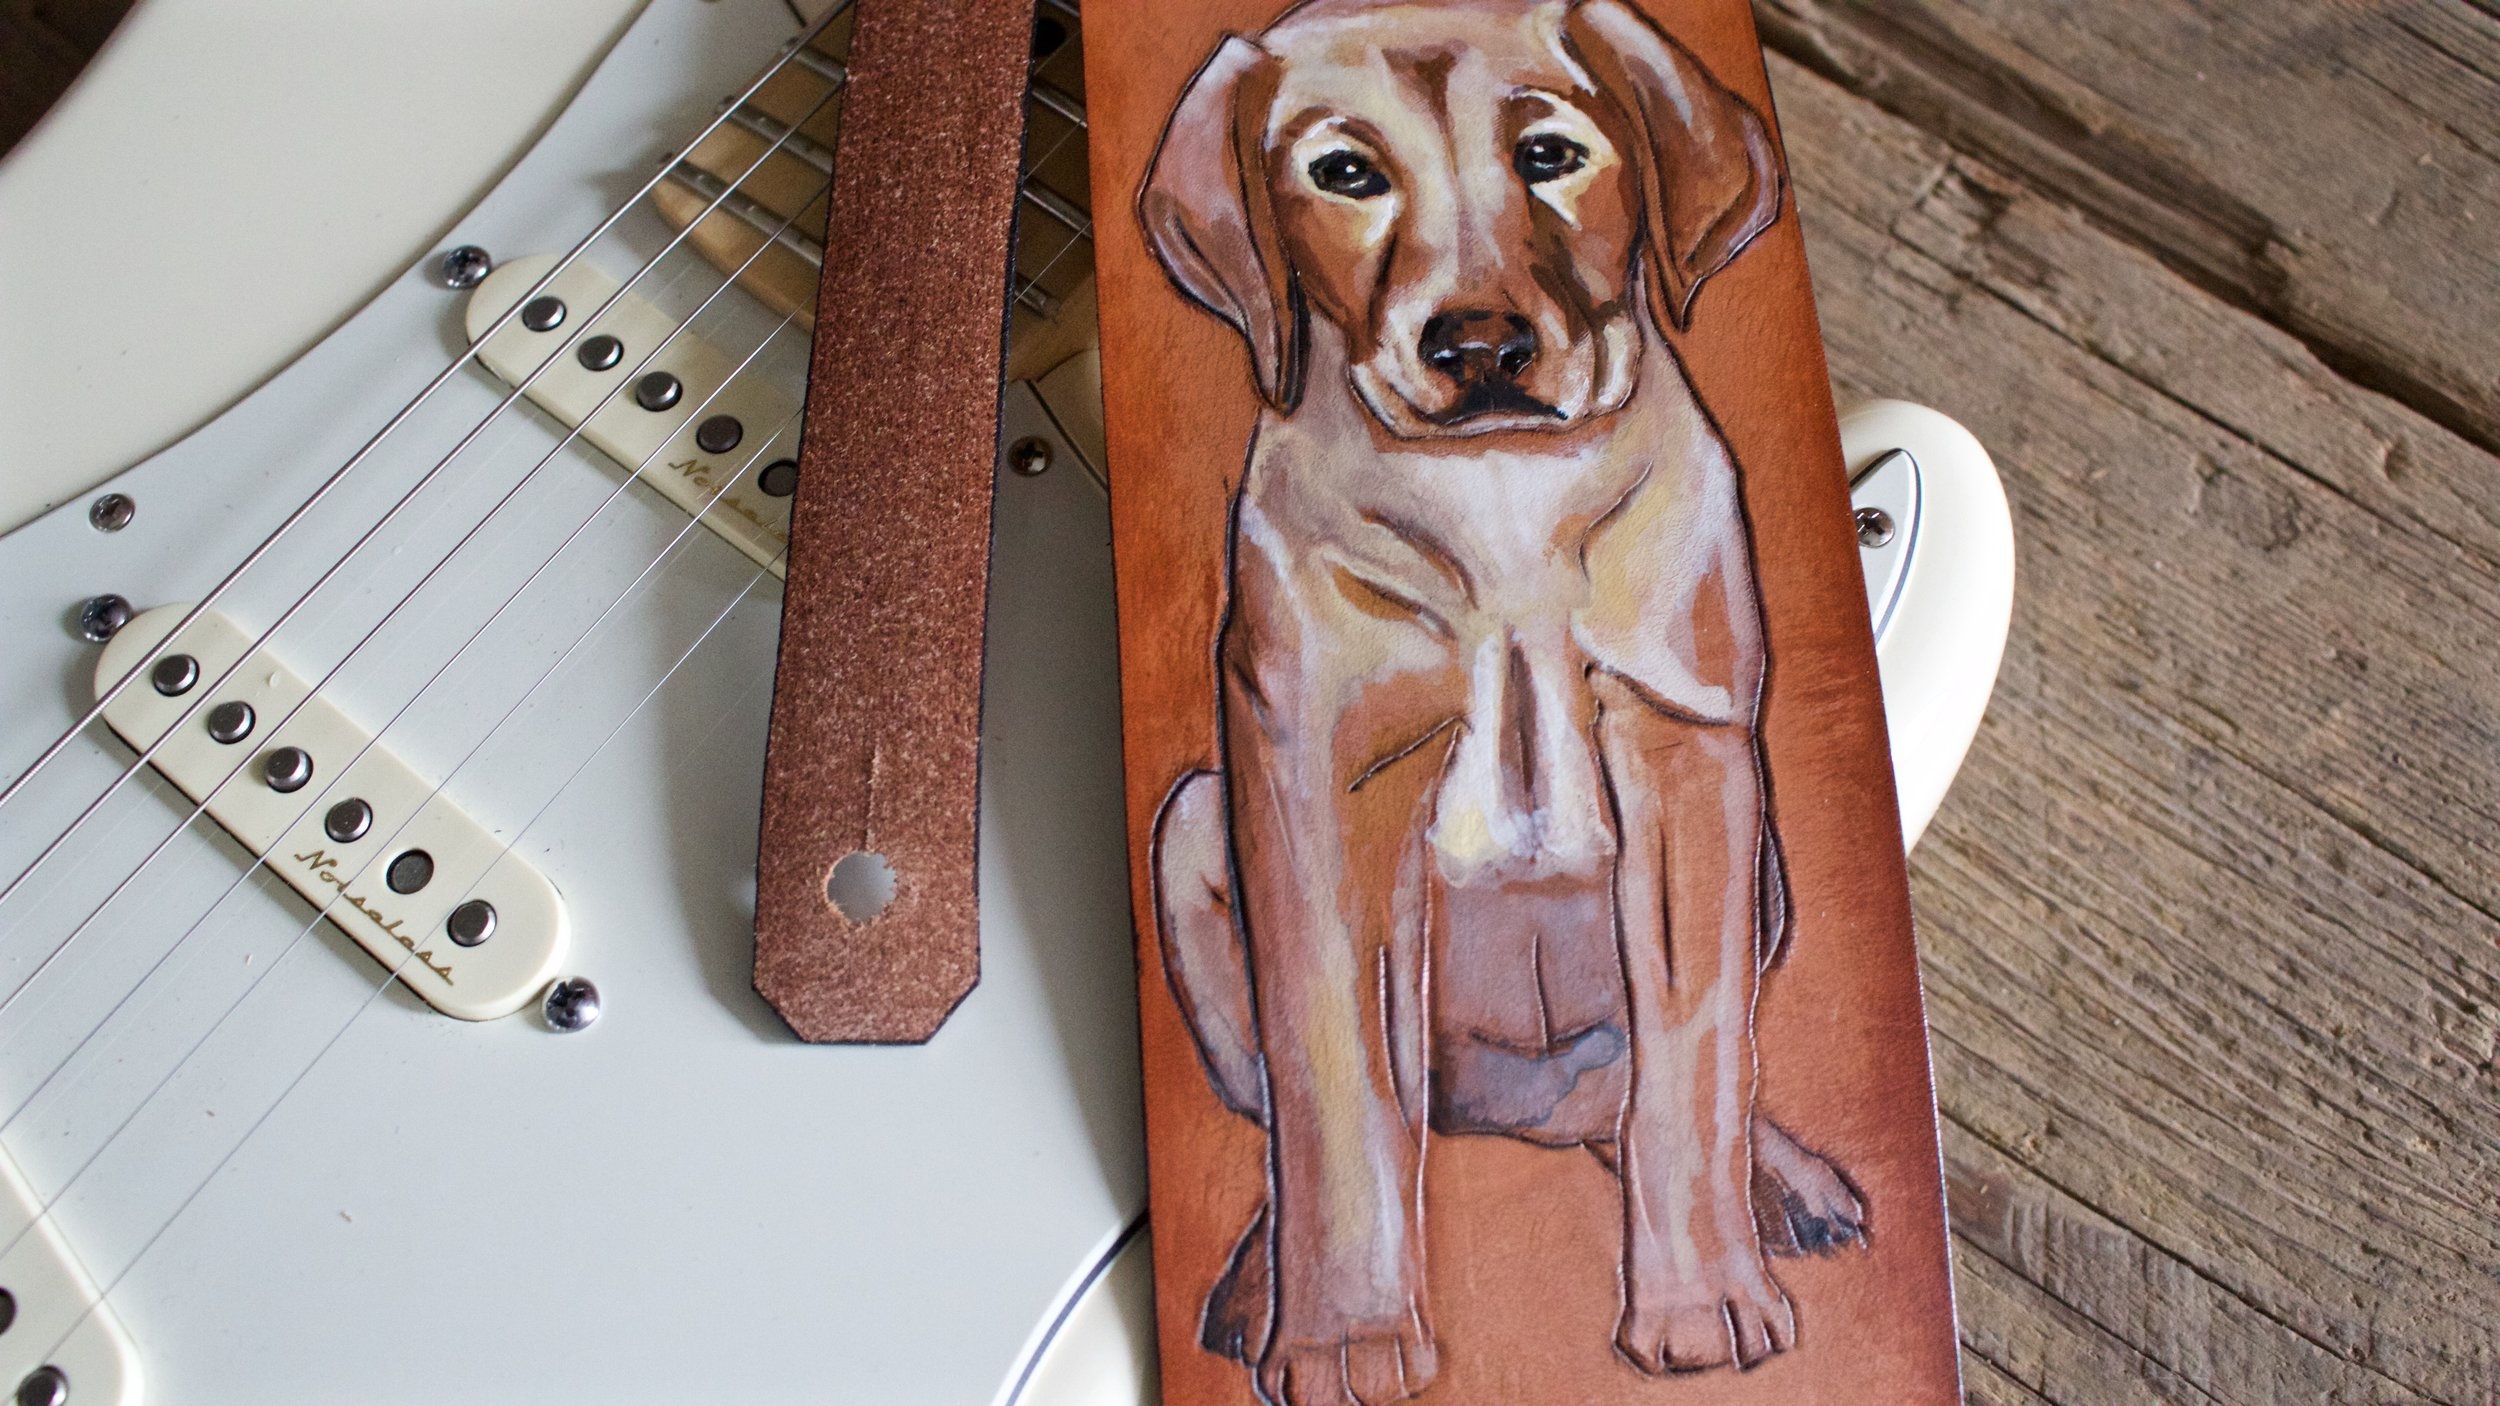 Custom Guitar Strap with Puppy